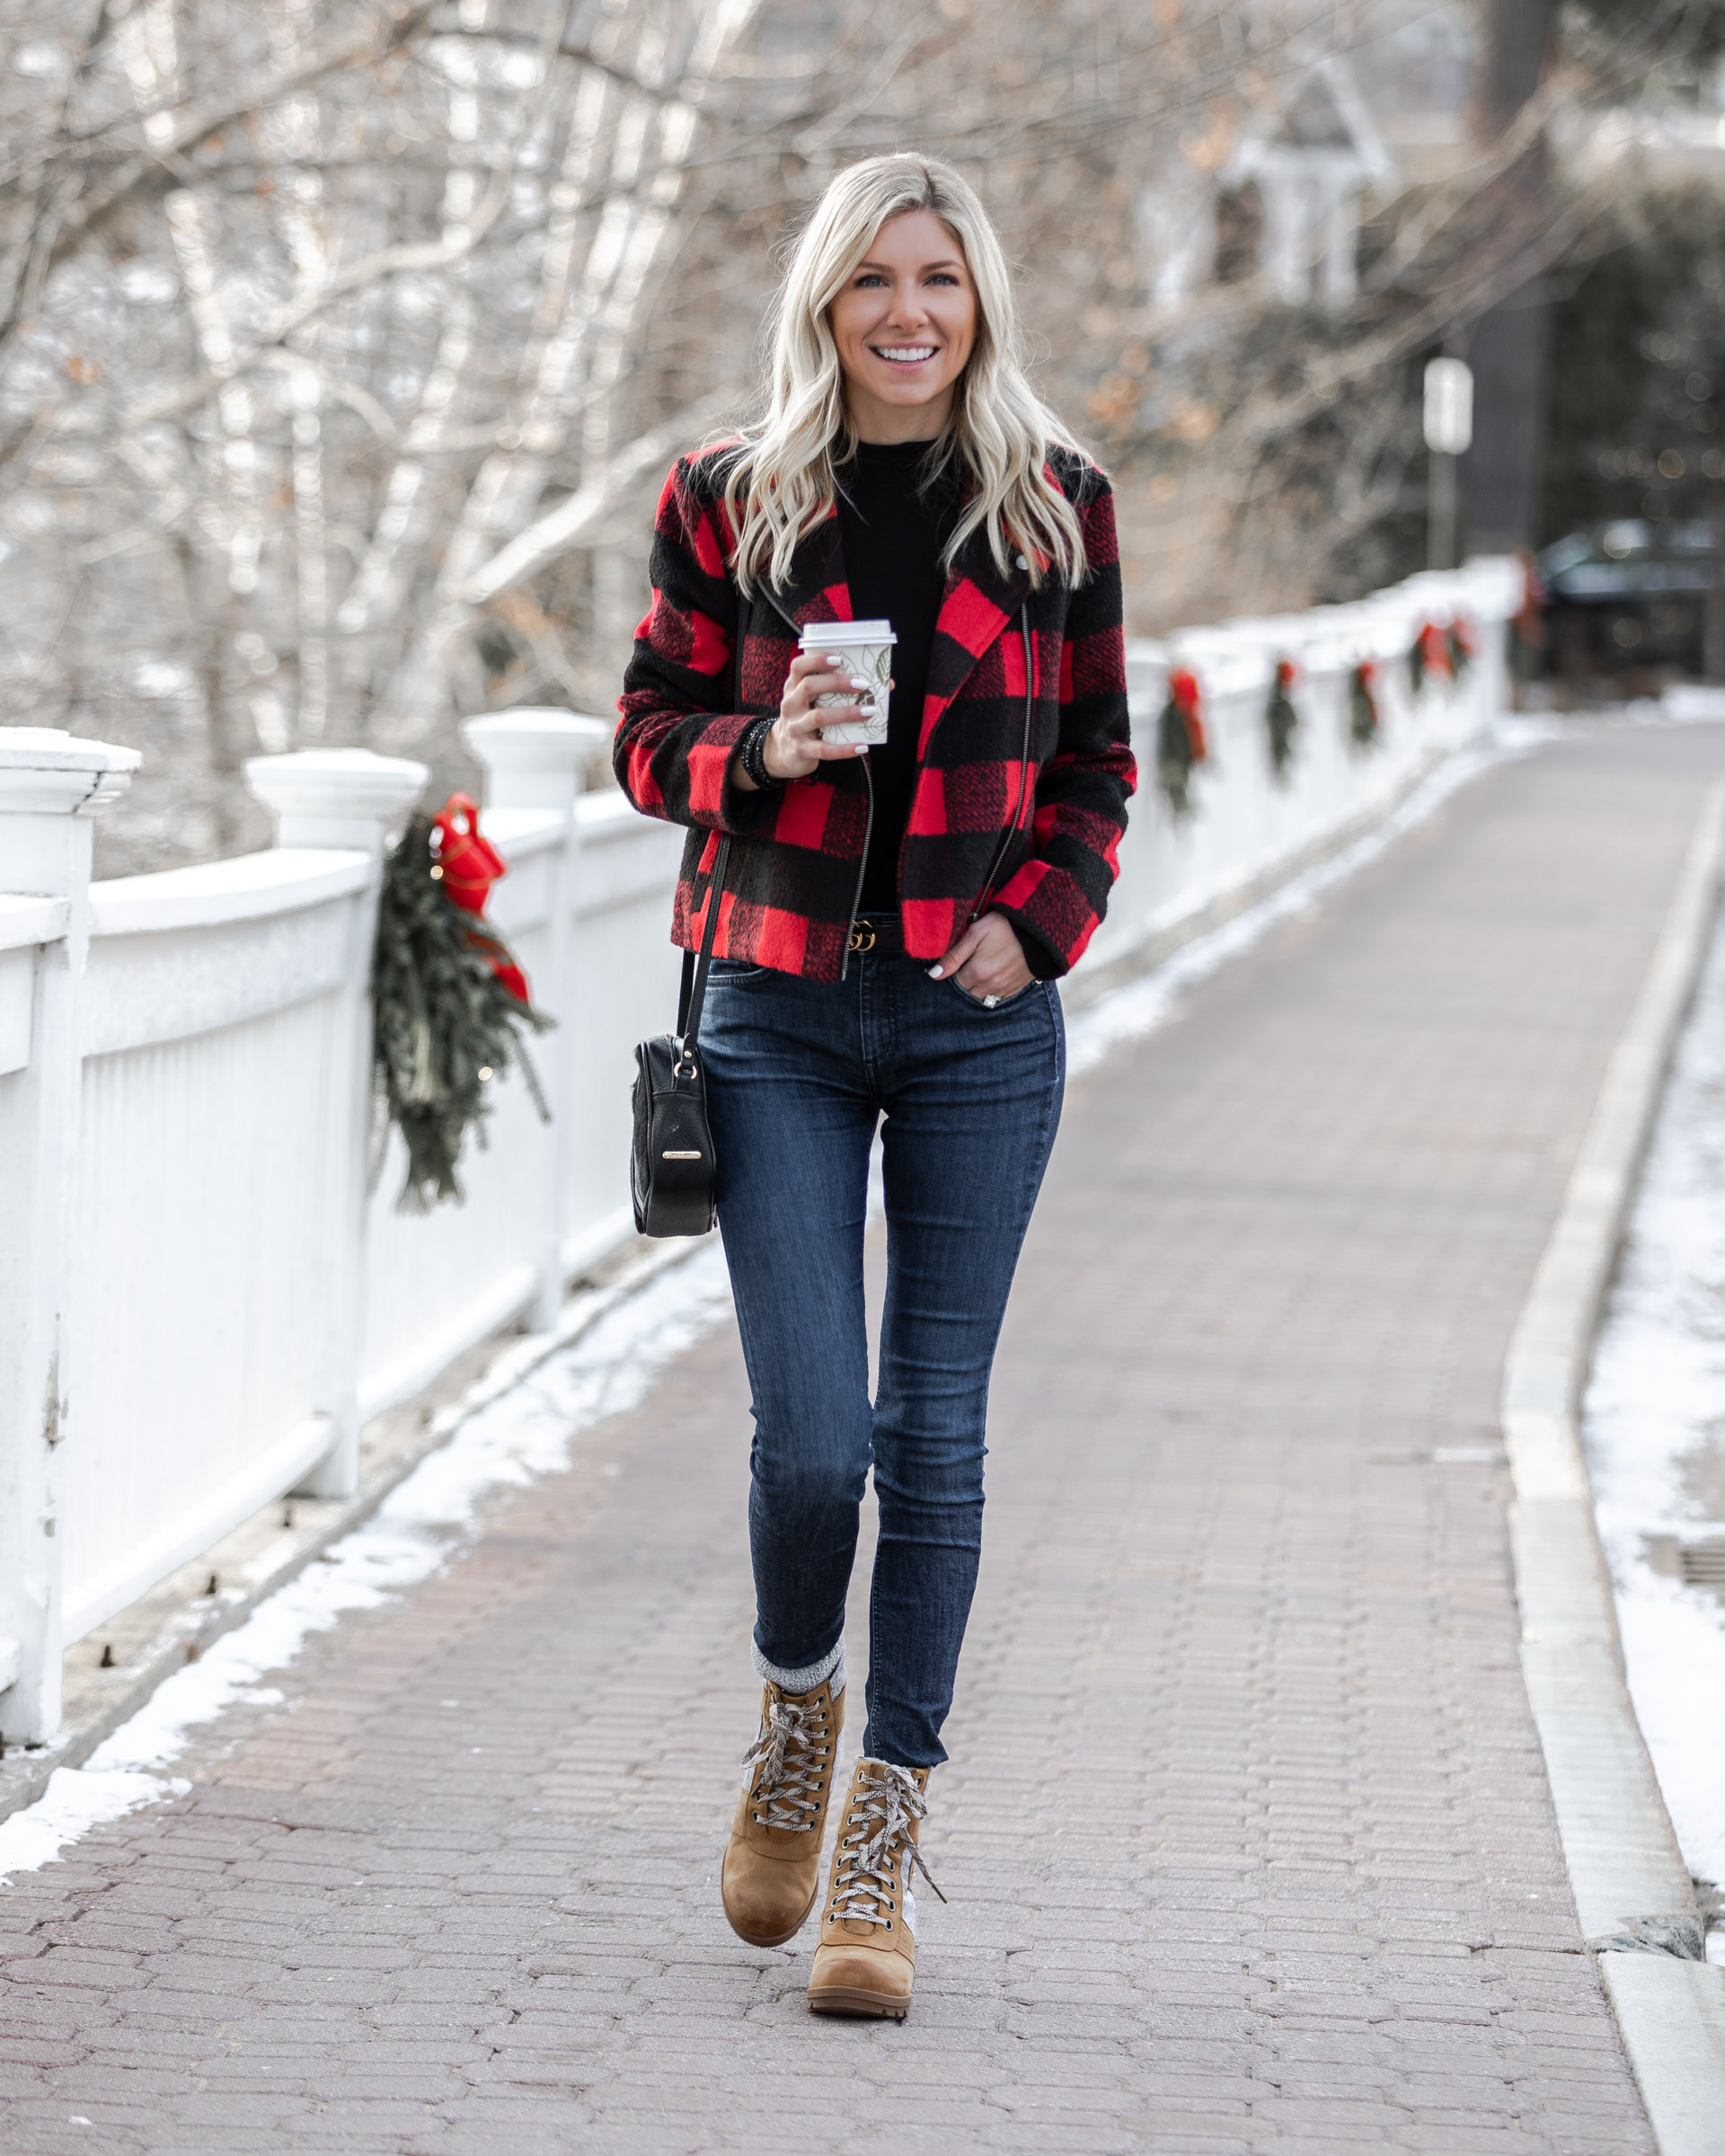 the-perfect-winter-getaway-in-lake-placid-the-glamorous-gal